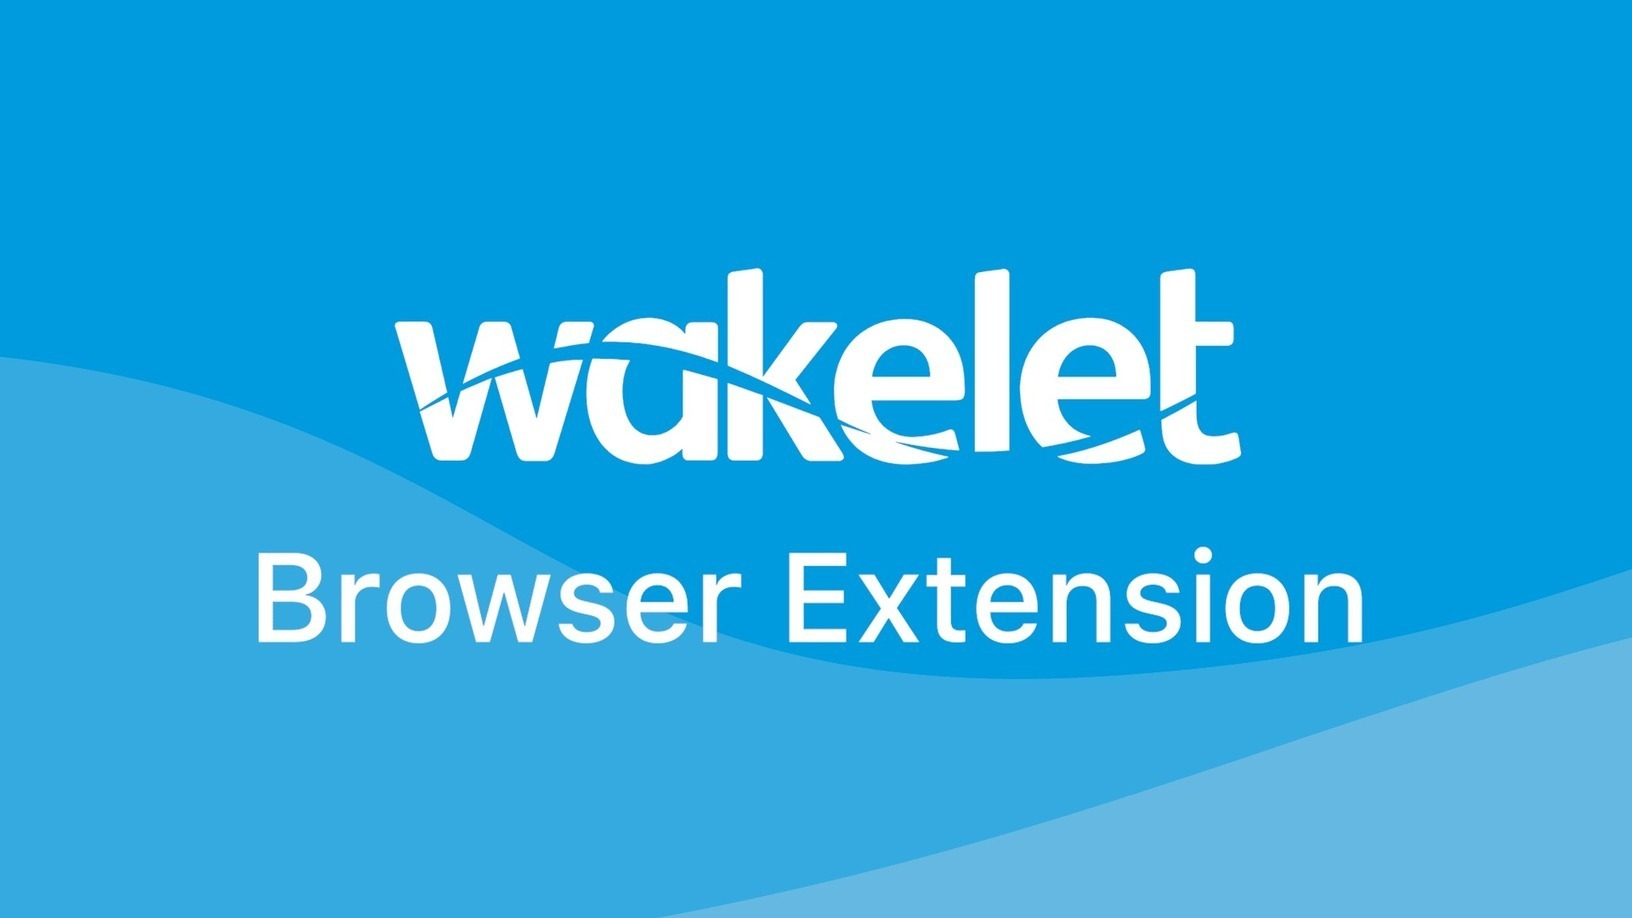 Dropmark Extension the wakelet browser extension - save, organize,